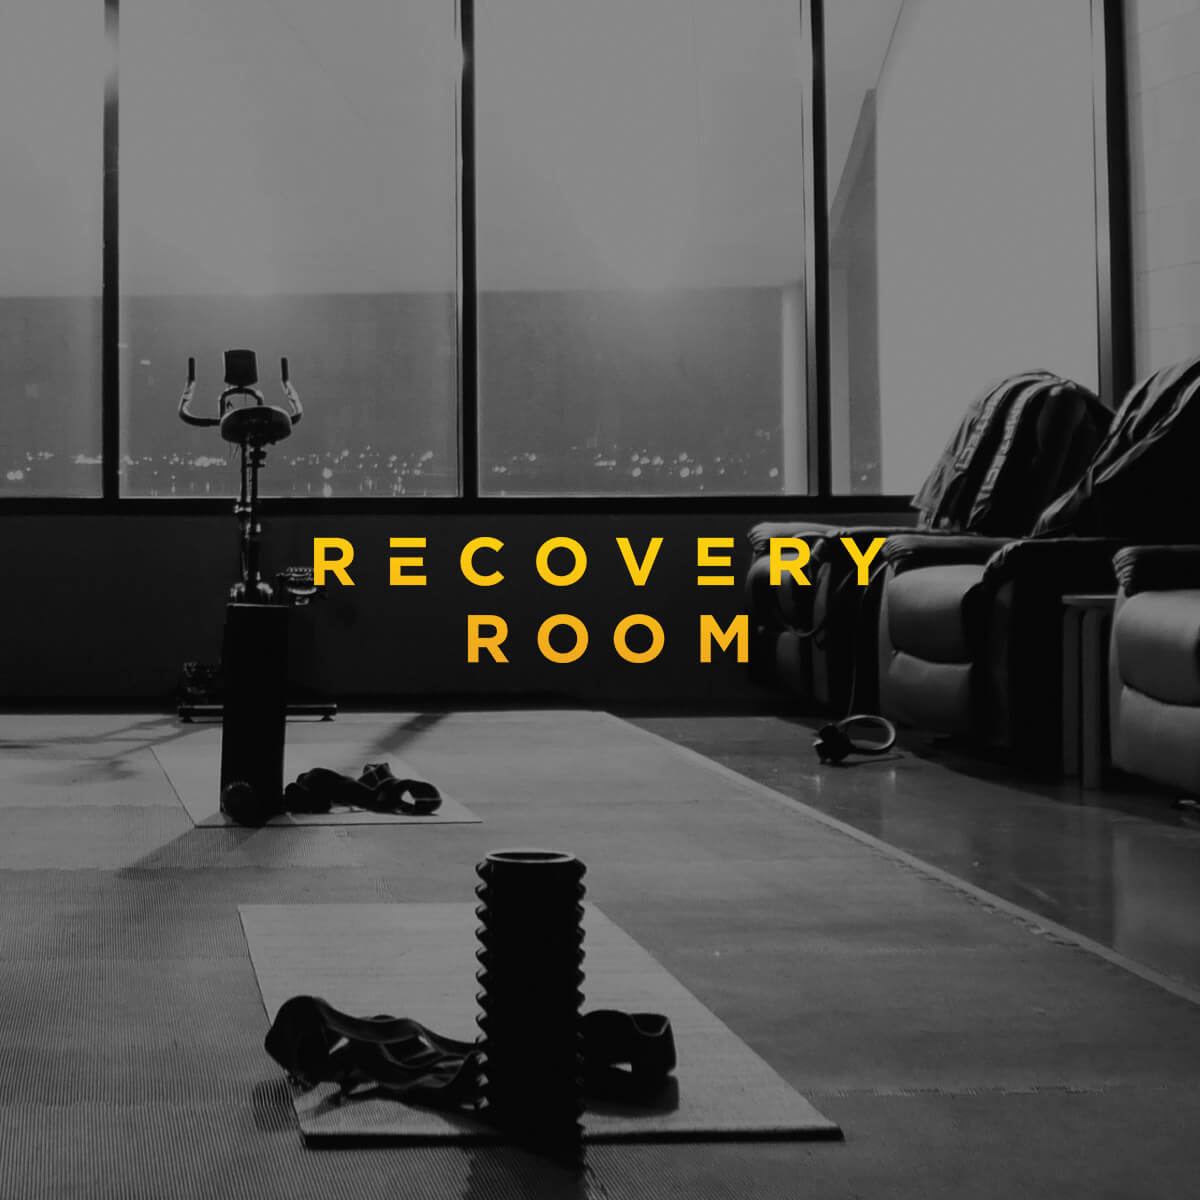 Recovery Room